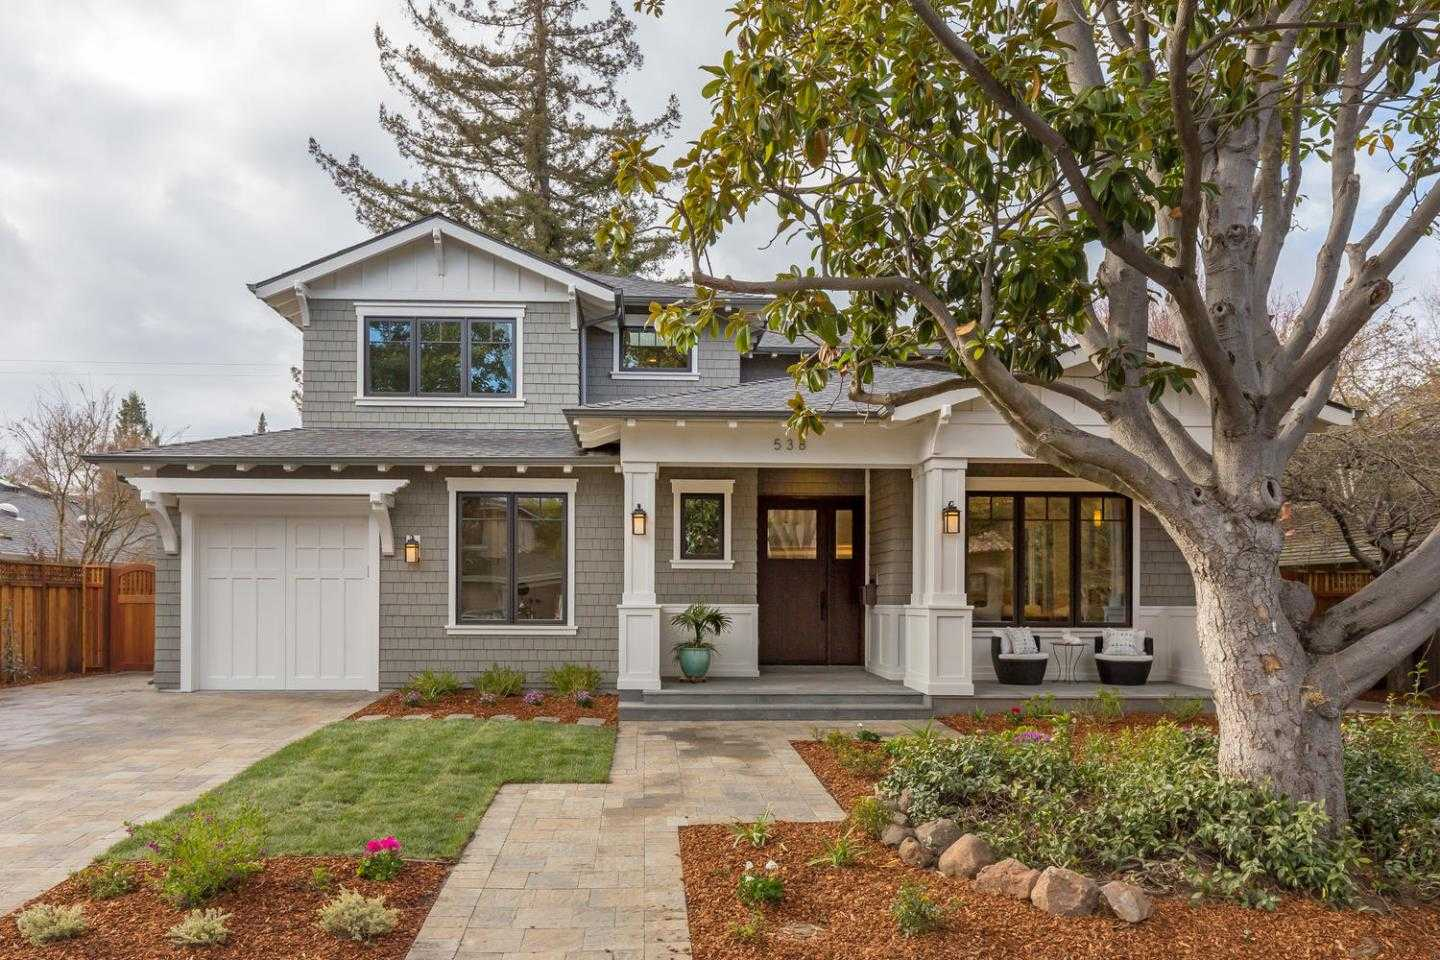 $6,580,000 - 6Br/7Ba -  for Sale in Palo Alto